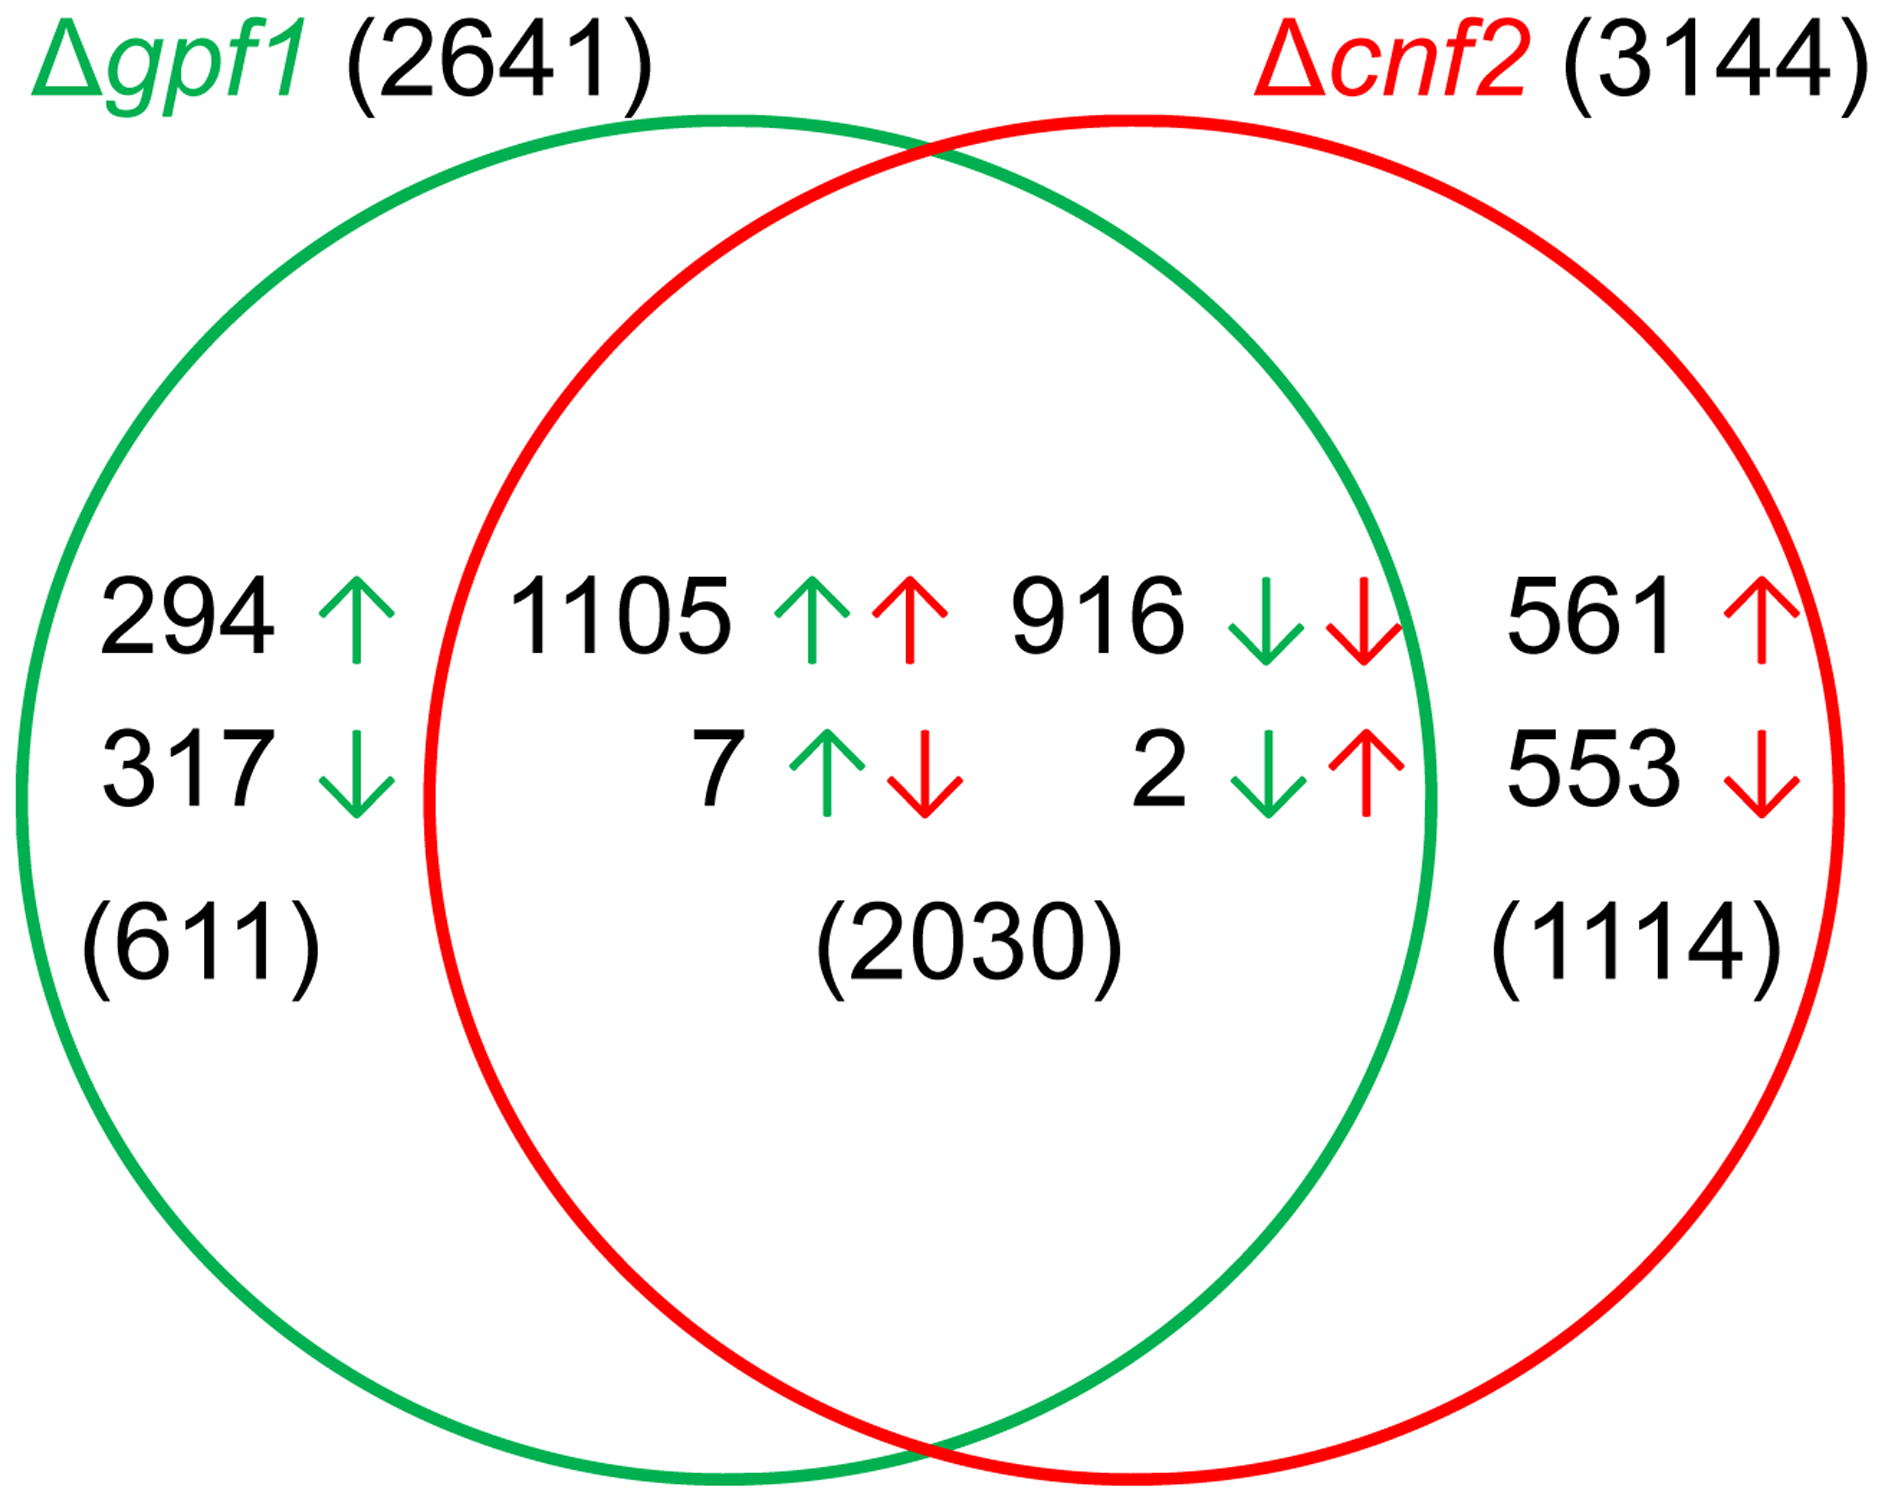 Comparison of differentially expressed genes between Δ<i>gpf1</i> and Δ<i>cnf2</i>.